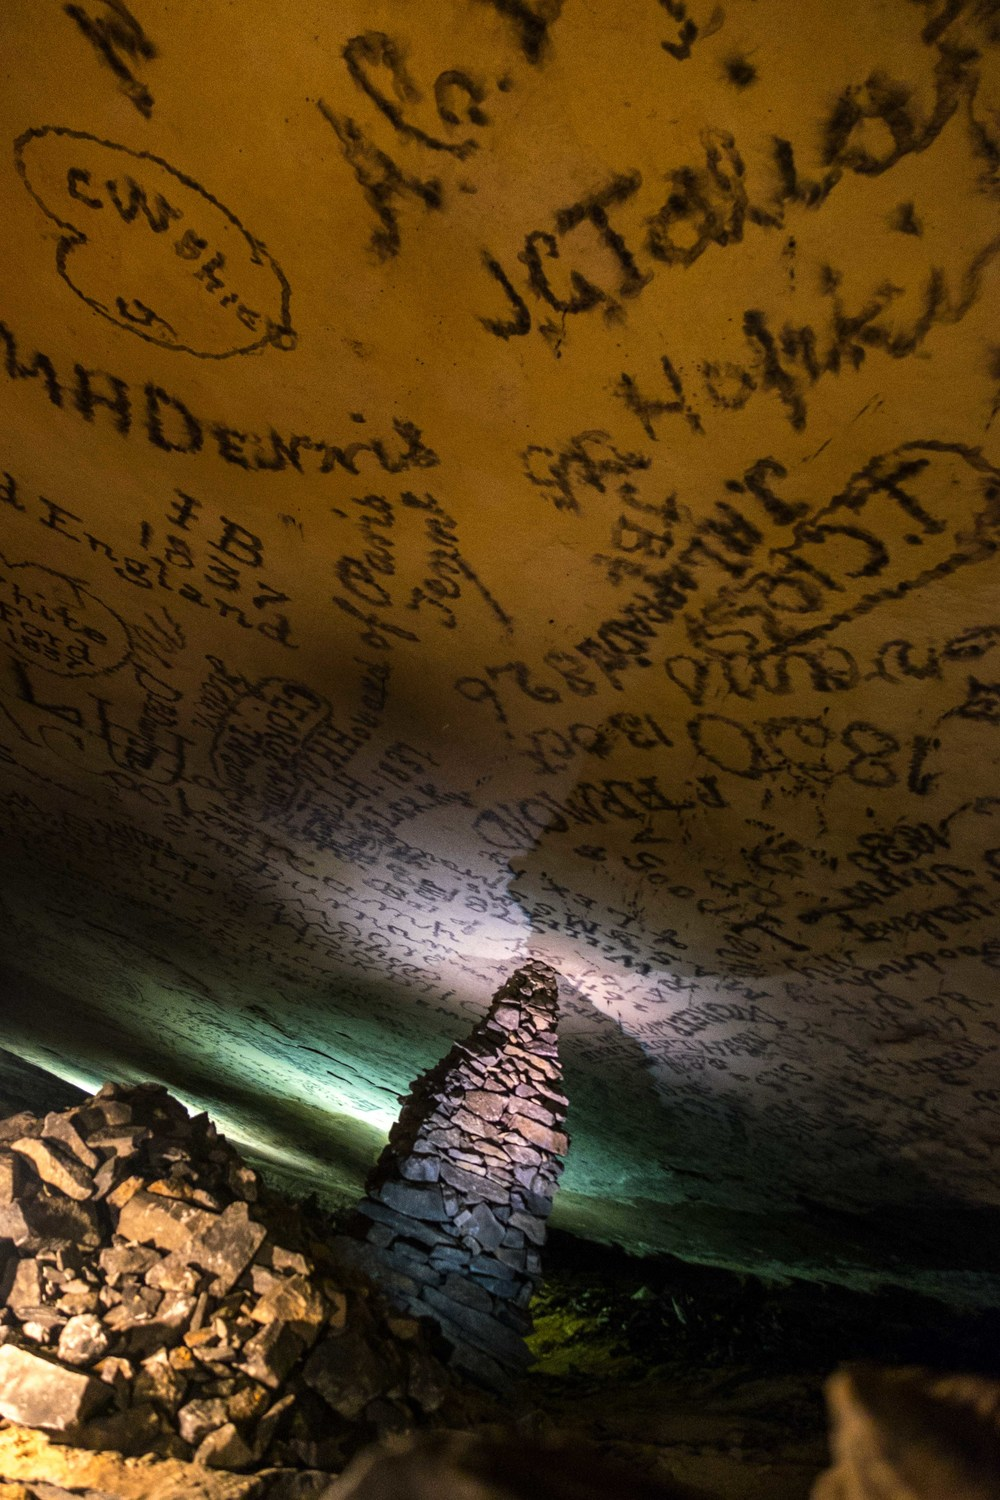 In the 19th-century cave visitors would write their names on the ceiling with candles.